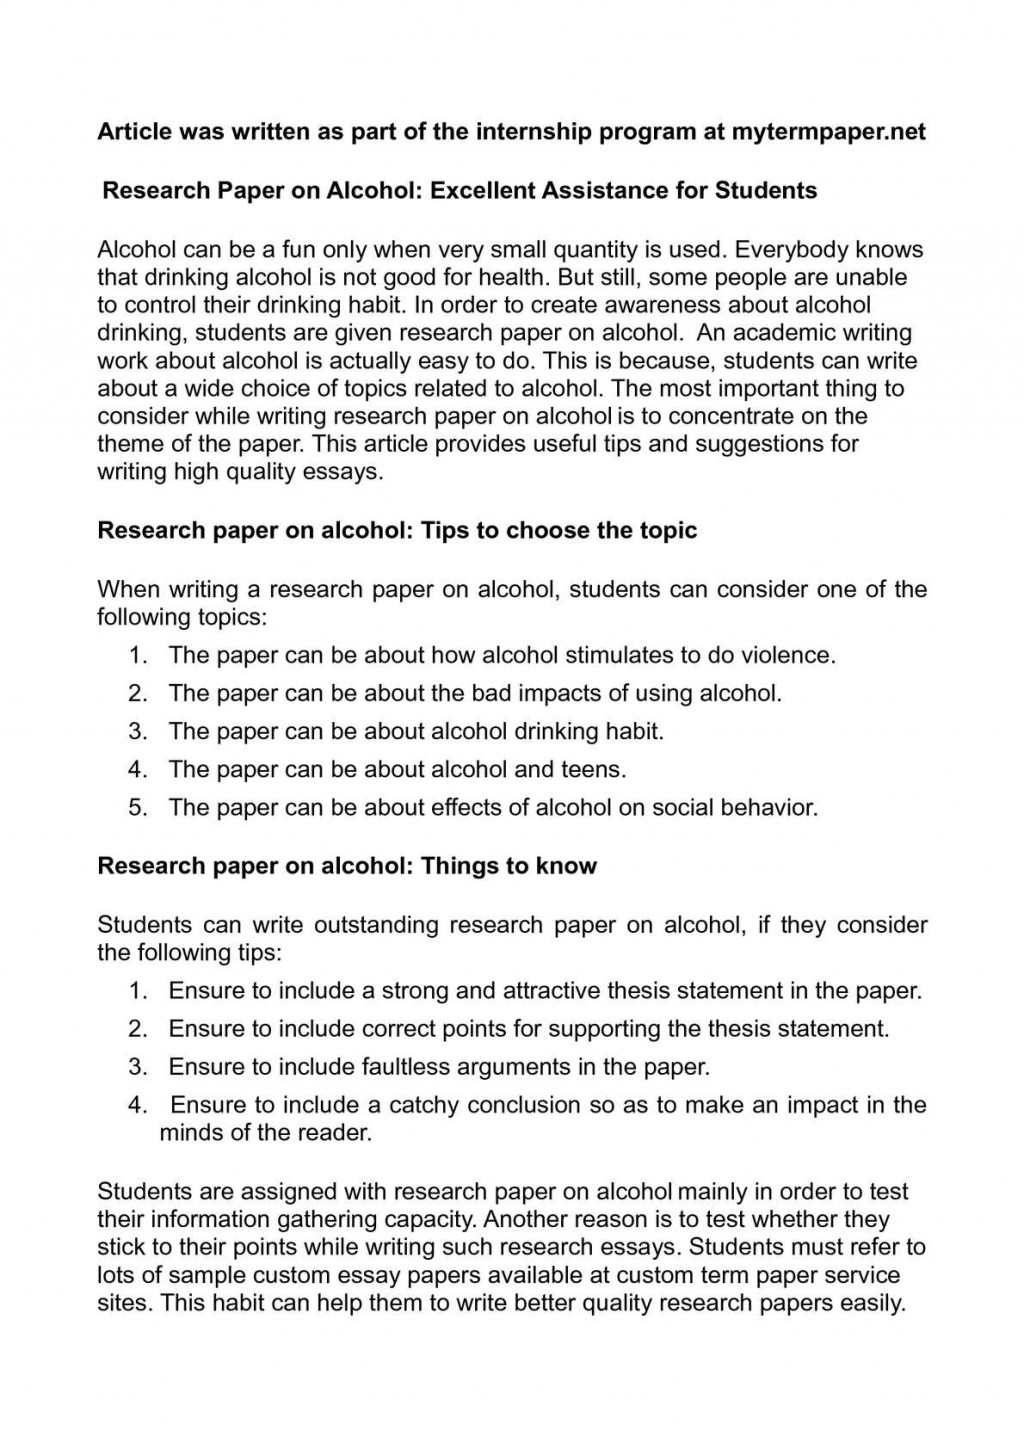 001 Research Paper On Alcohol Awesome Substance Abuse Treatment Alcoholic Beverages Large